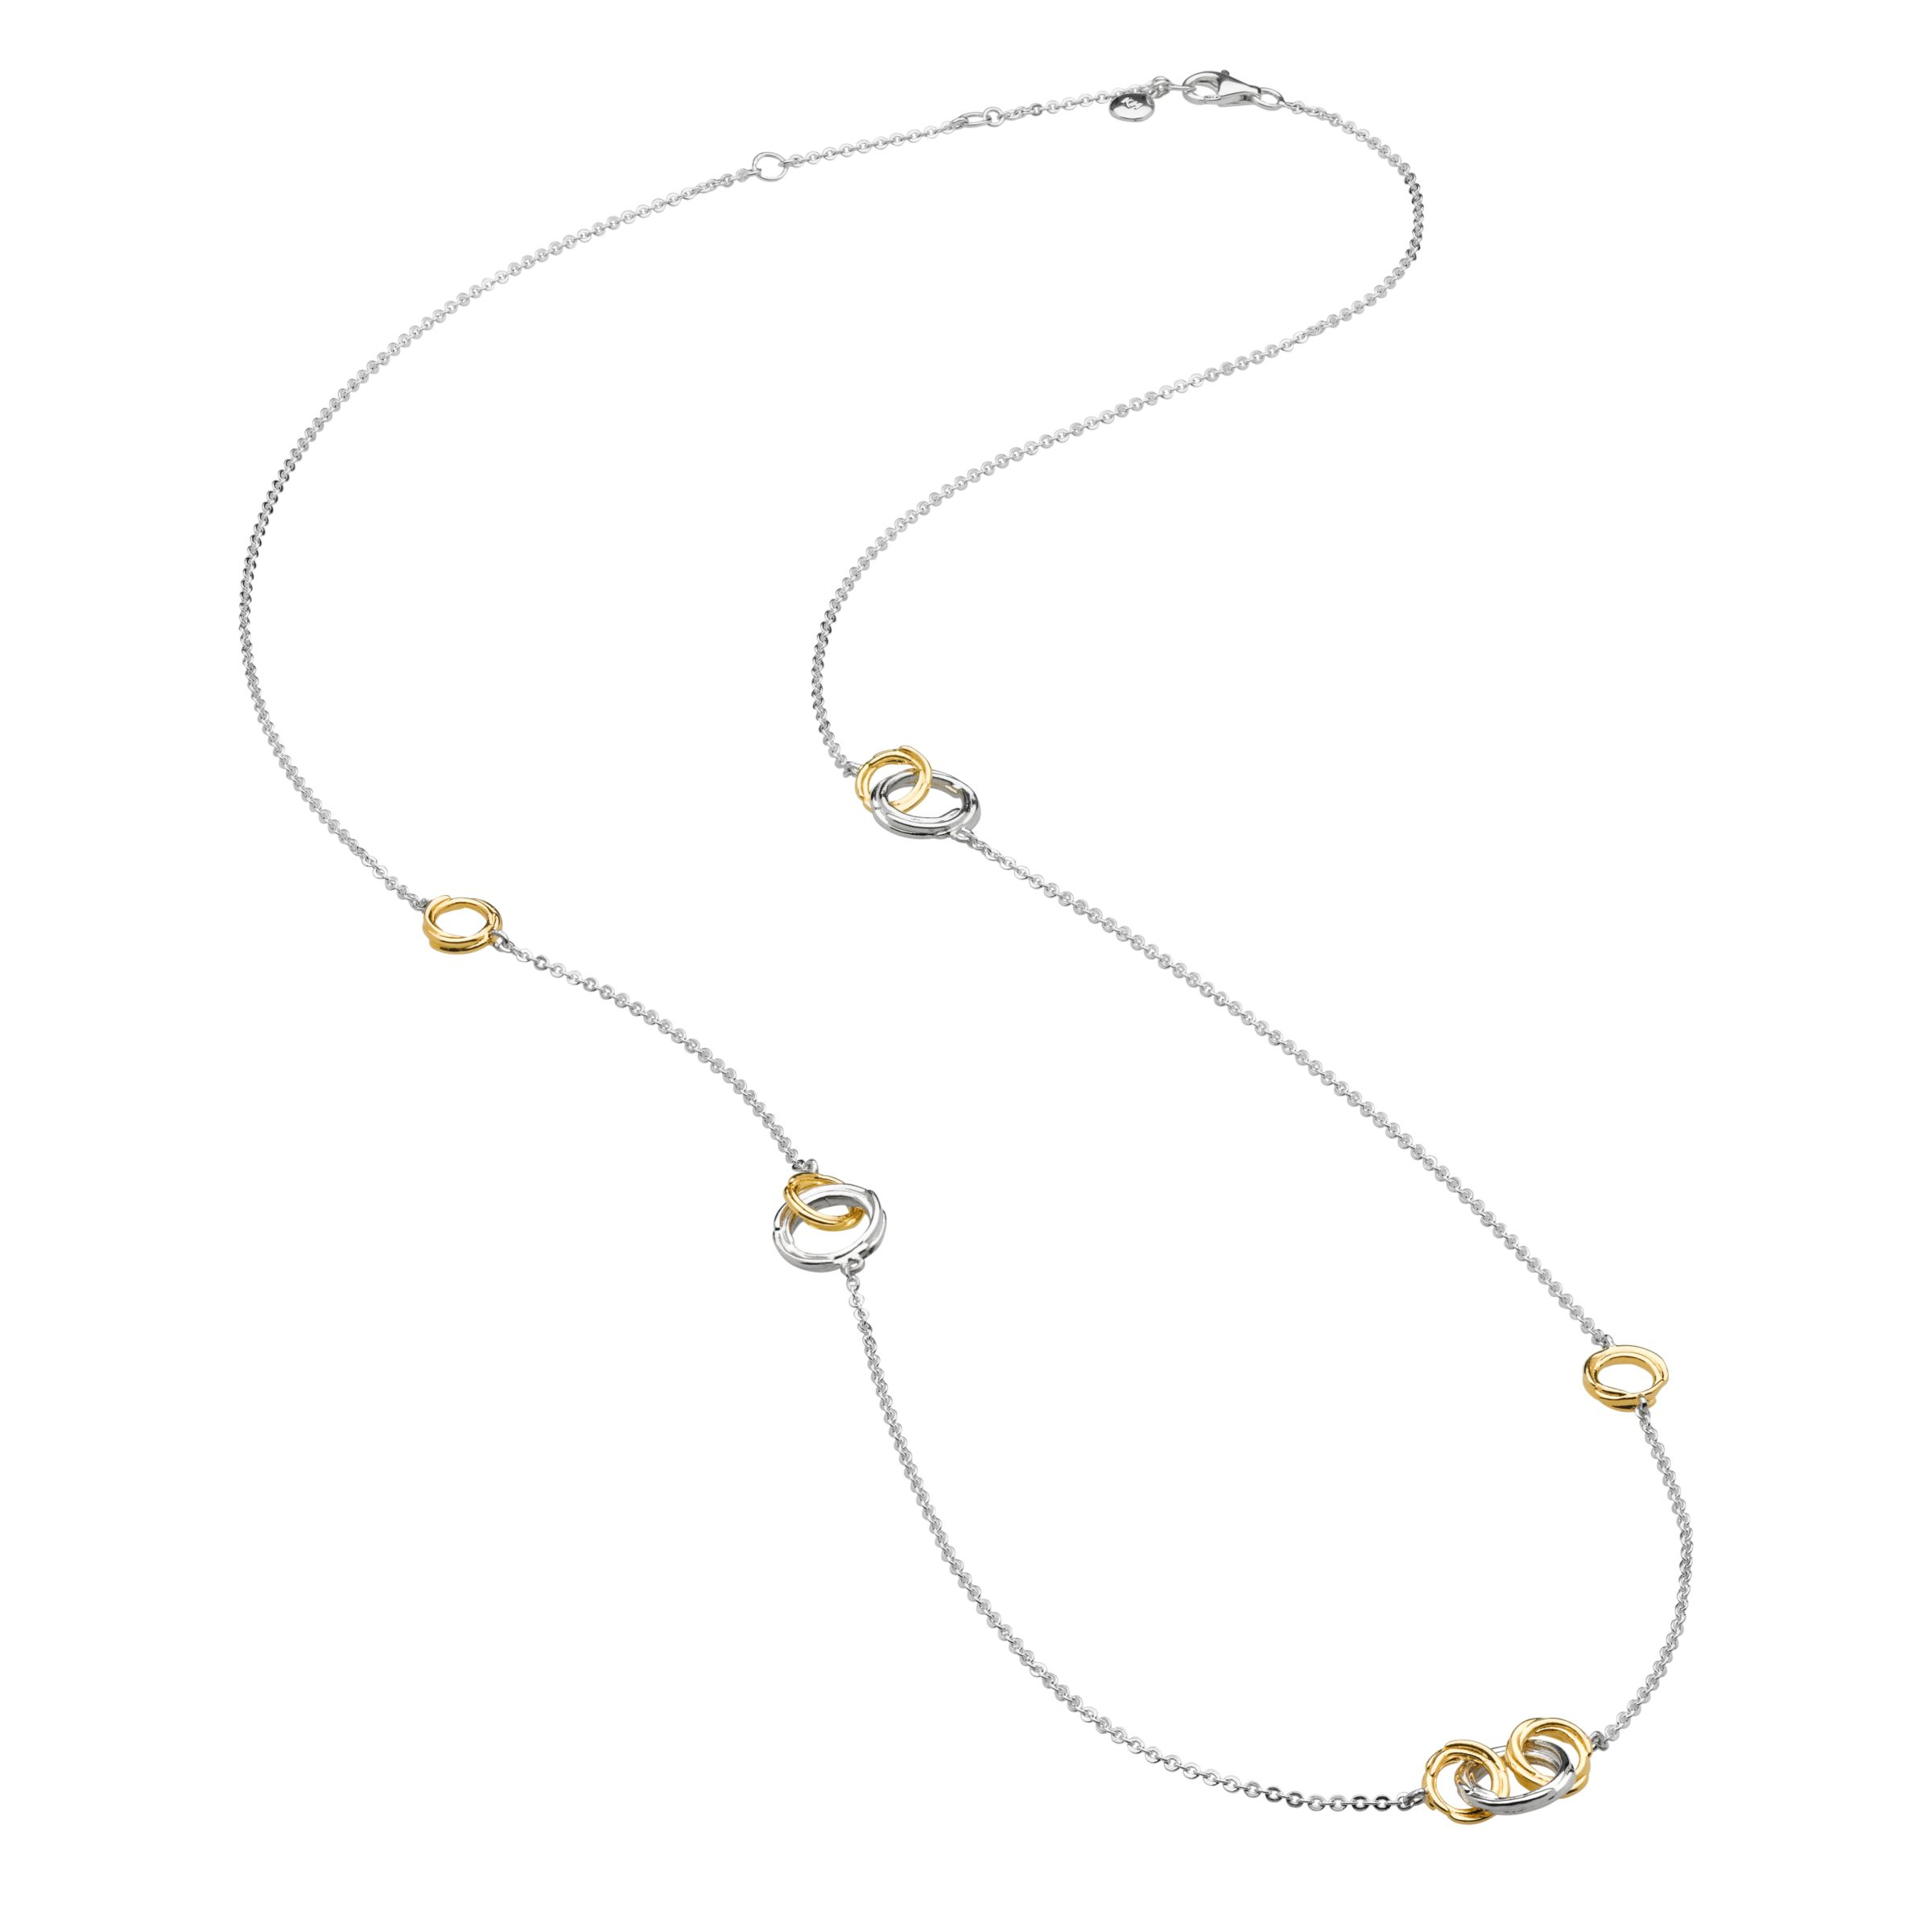 Kit Heath Kit Heath 18ct Gold Plated Sterling Silver Cocoon Link Necklace, Gold/Silver